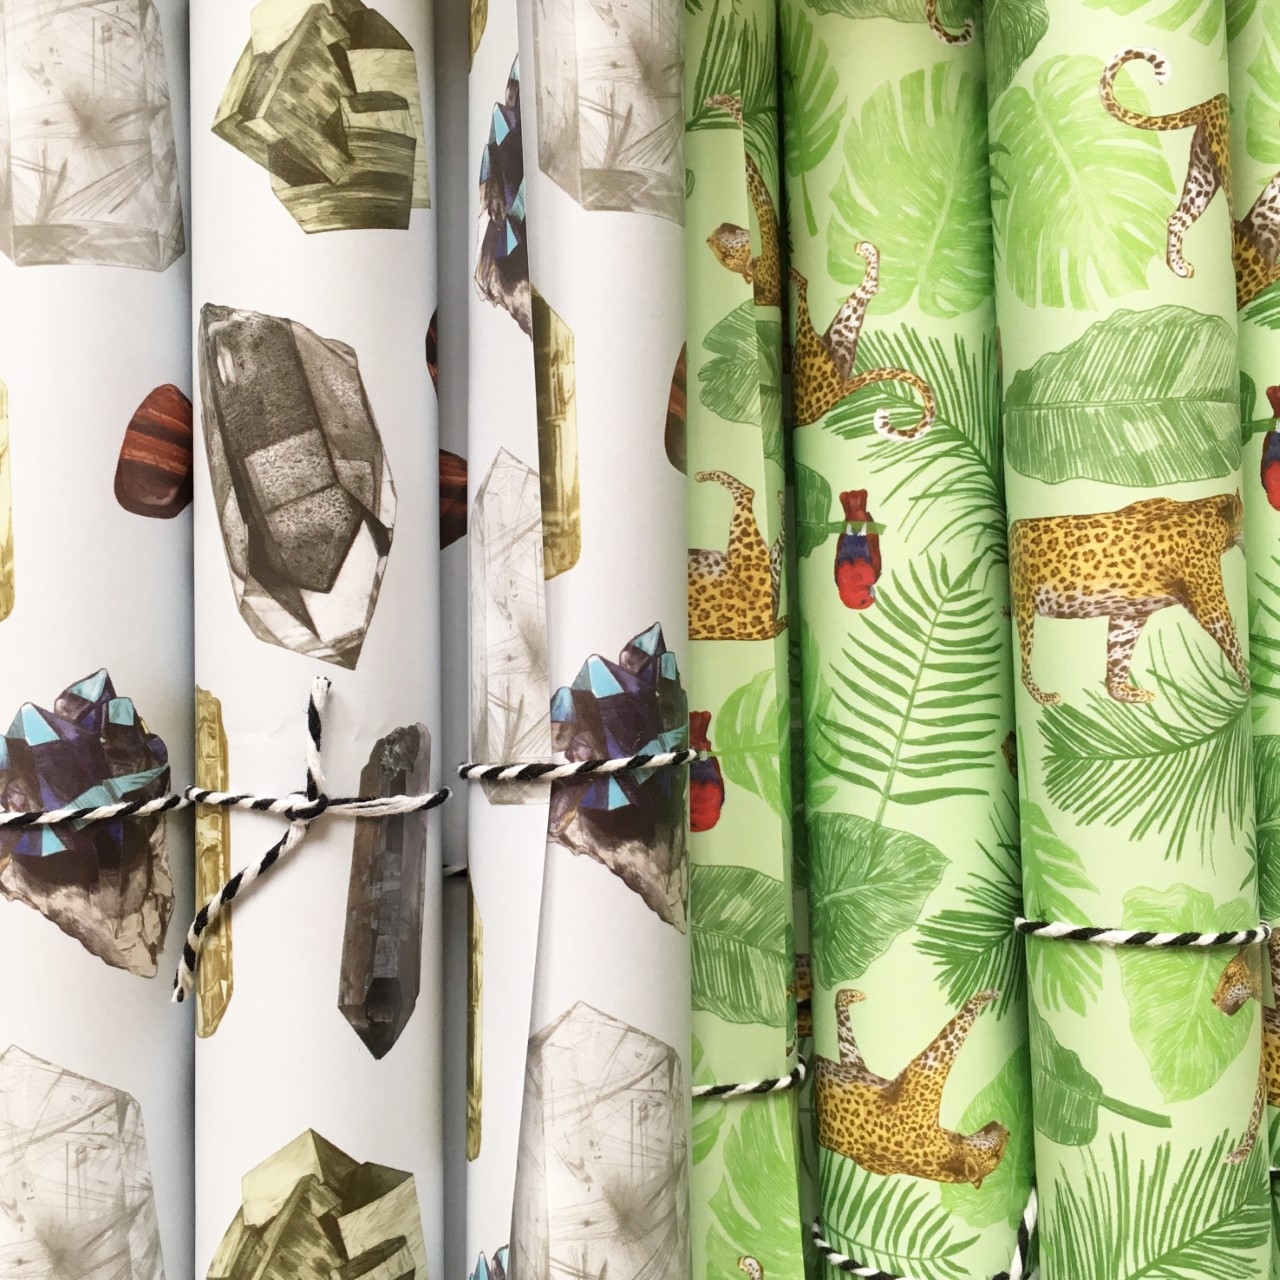 #ProudlyPrinted – The Wrapped Up Edition. Creations from Customers at Printed.com